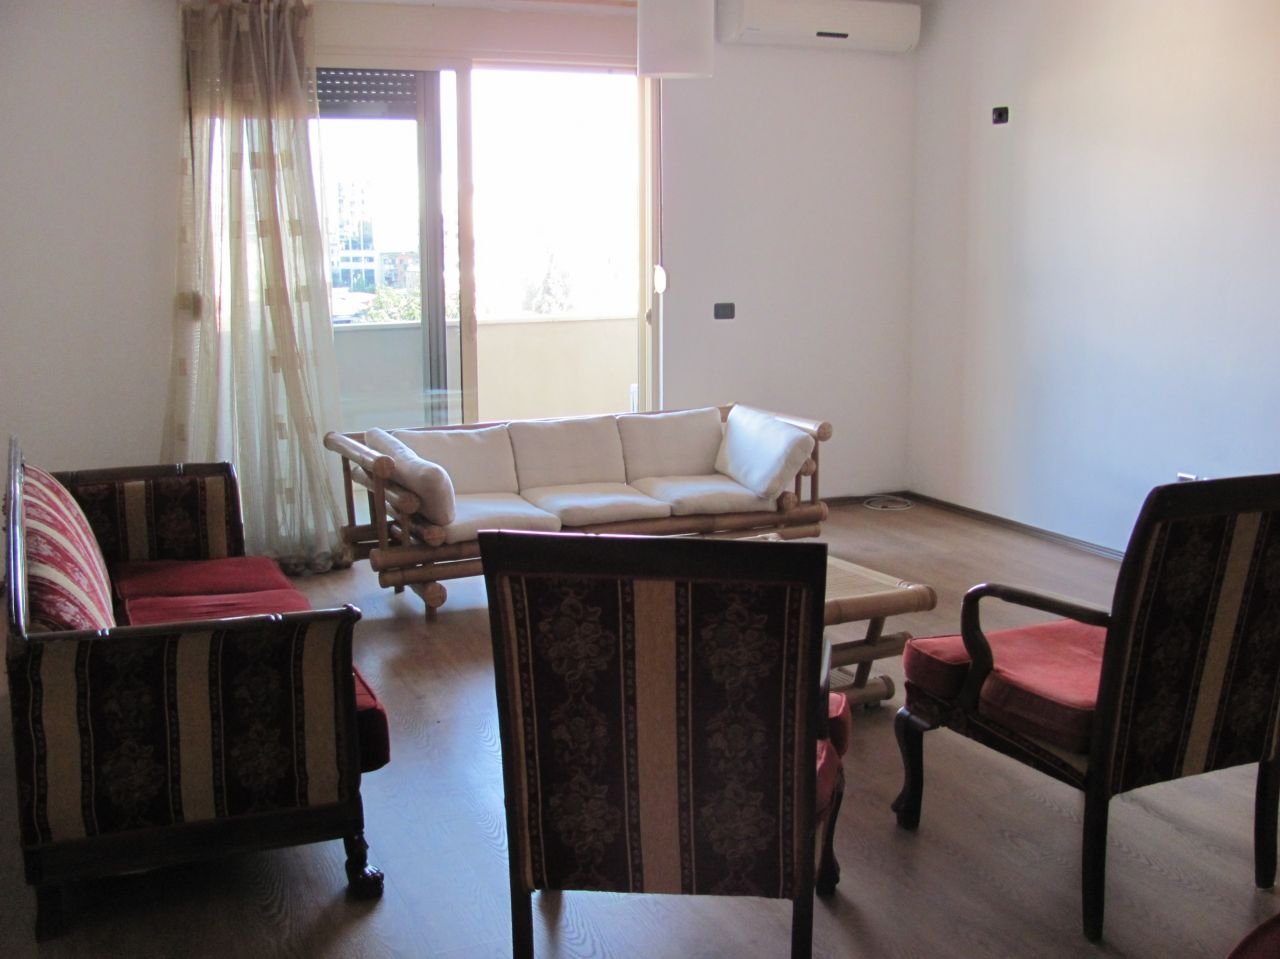 Apartment in Tirana - 135m2